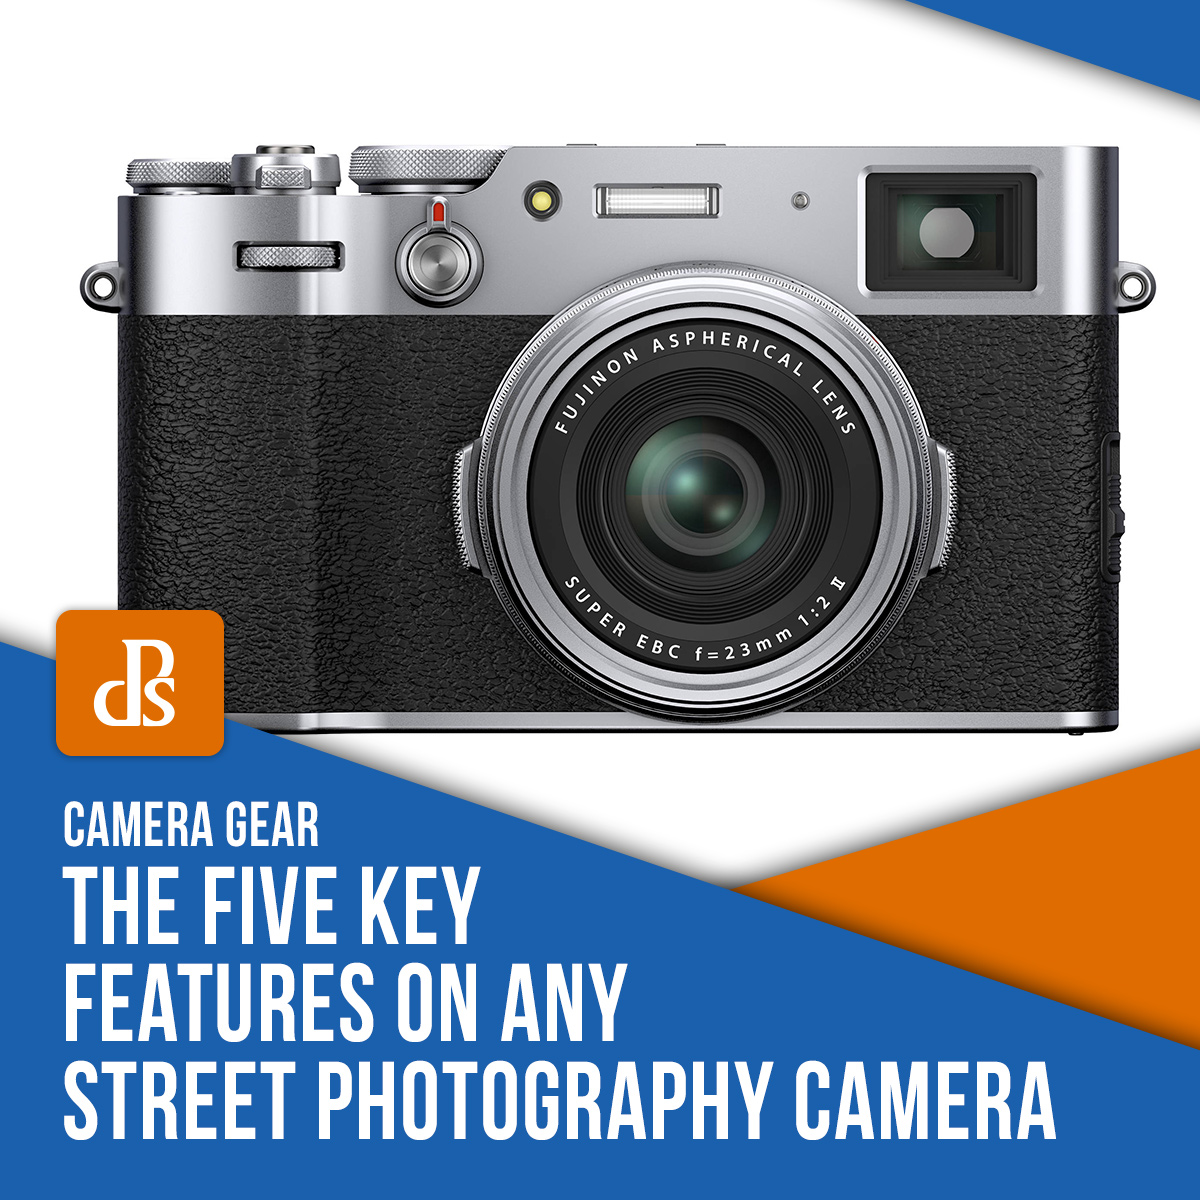 dps-key-features-street-photography-camera